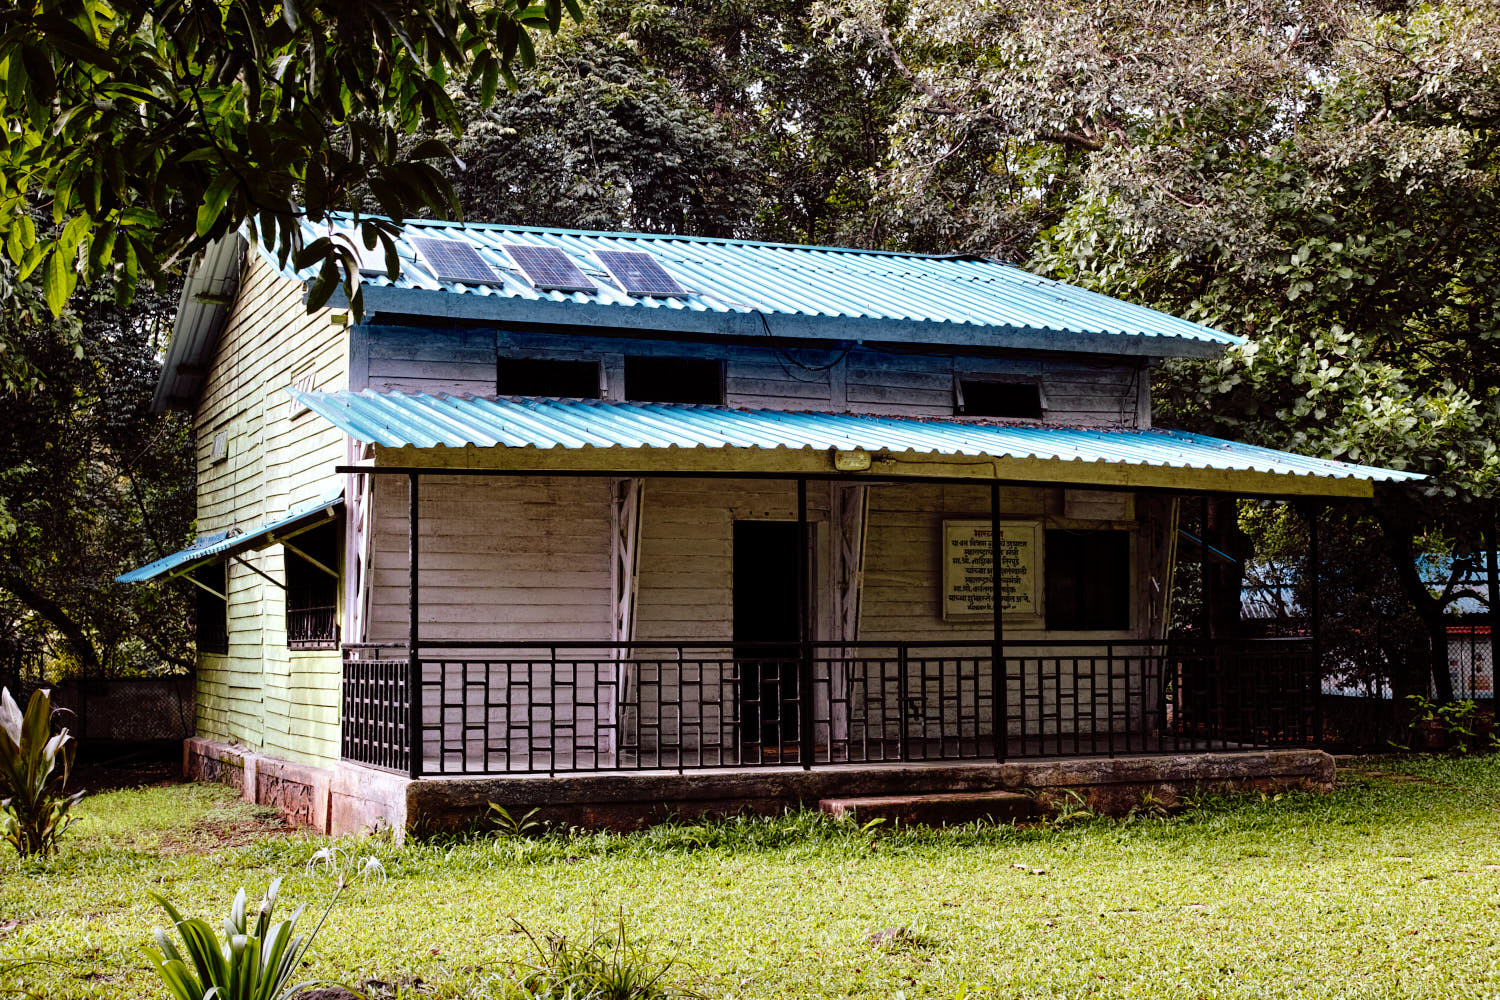 The guesthouse at Karnala sanctuary